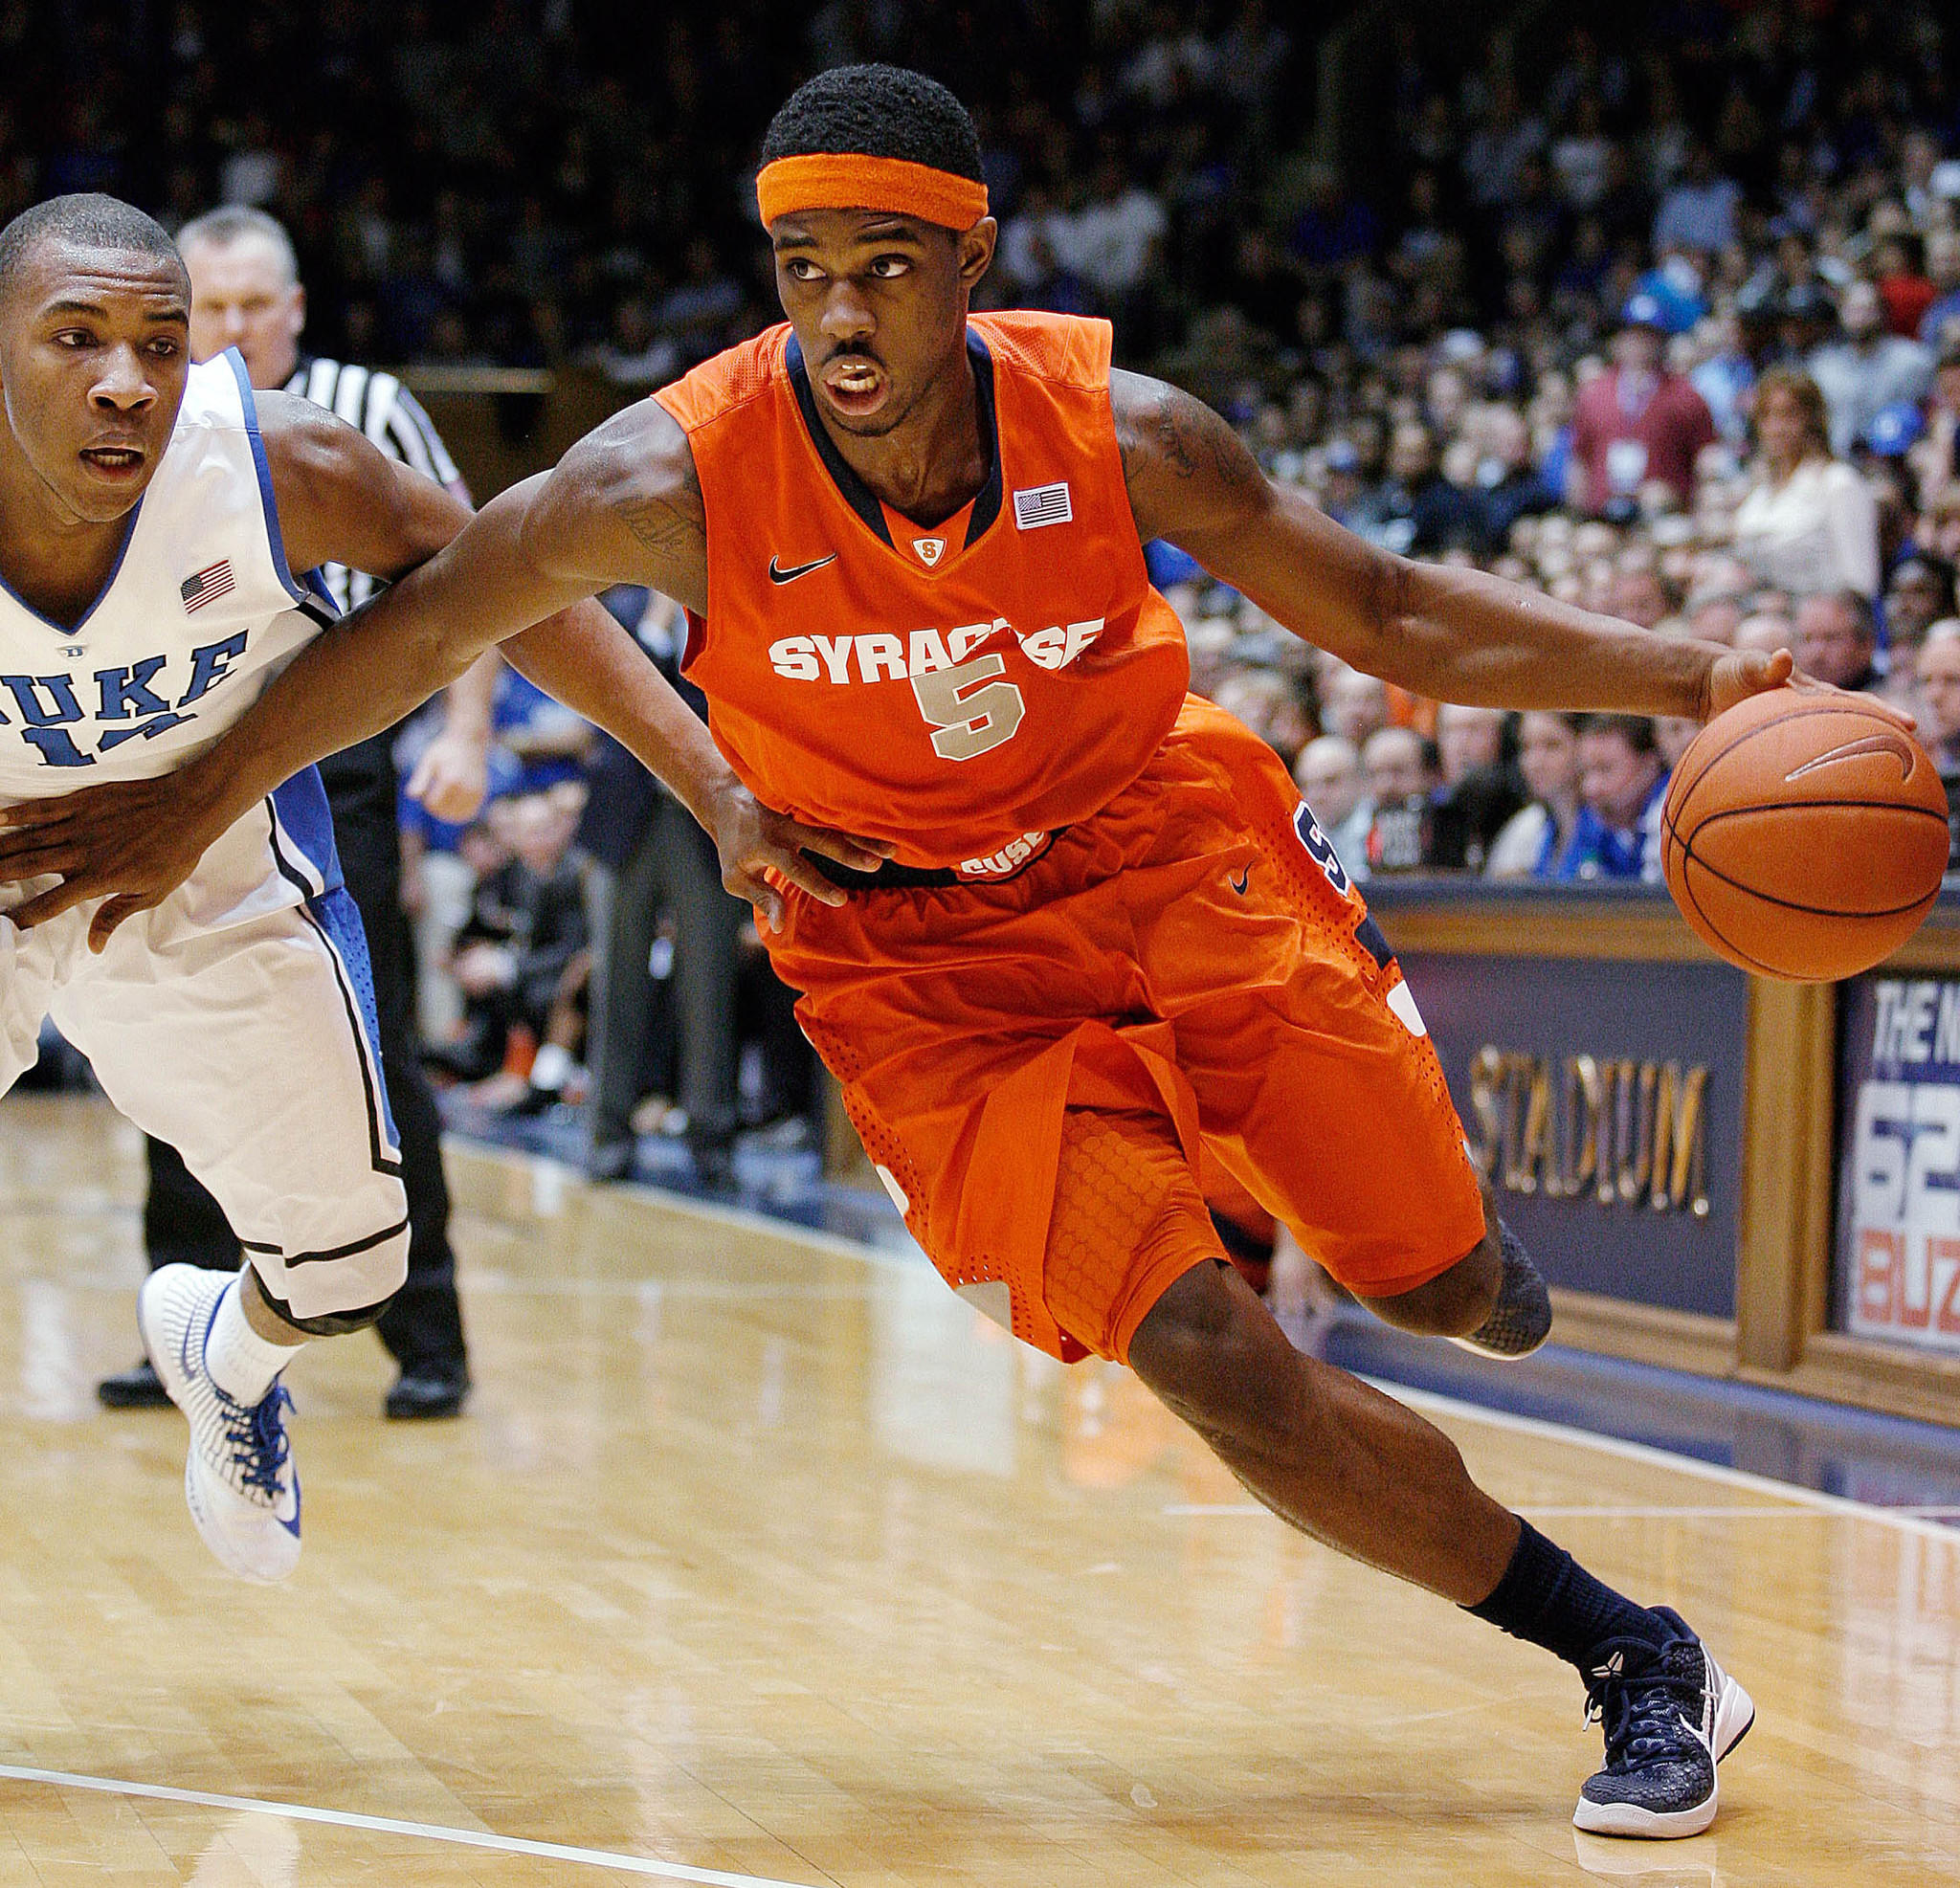 Syracuse's C.J. Fair drives against Duke's Rasheed Sulaimon at Cameron Indoor Stadium.